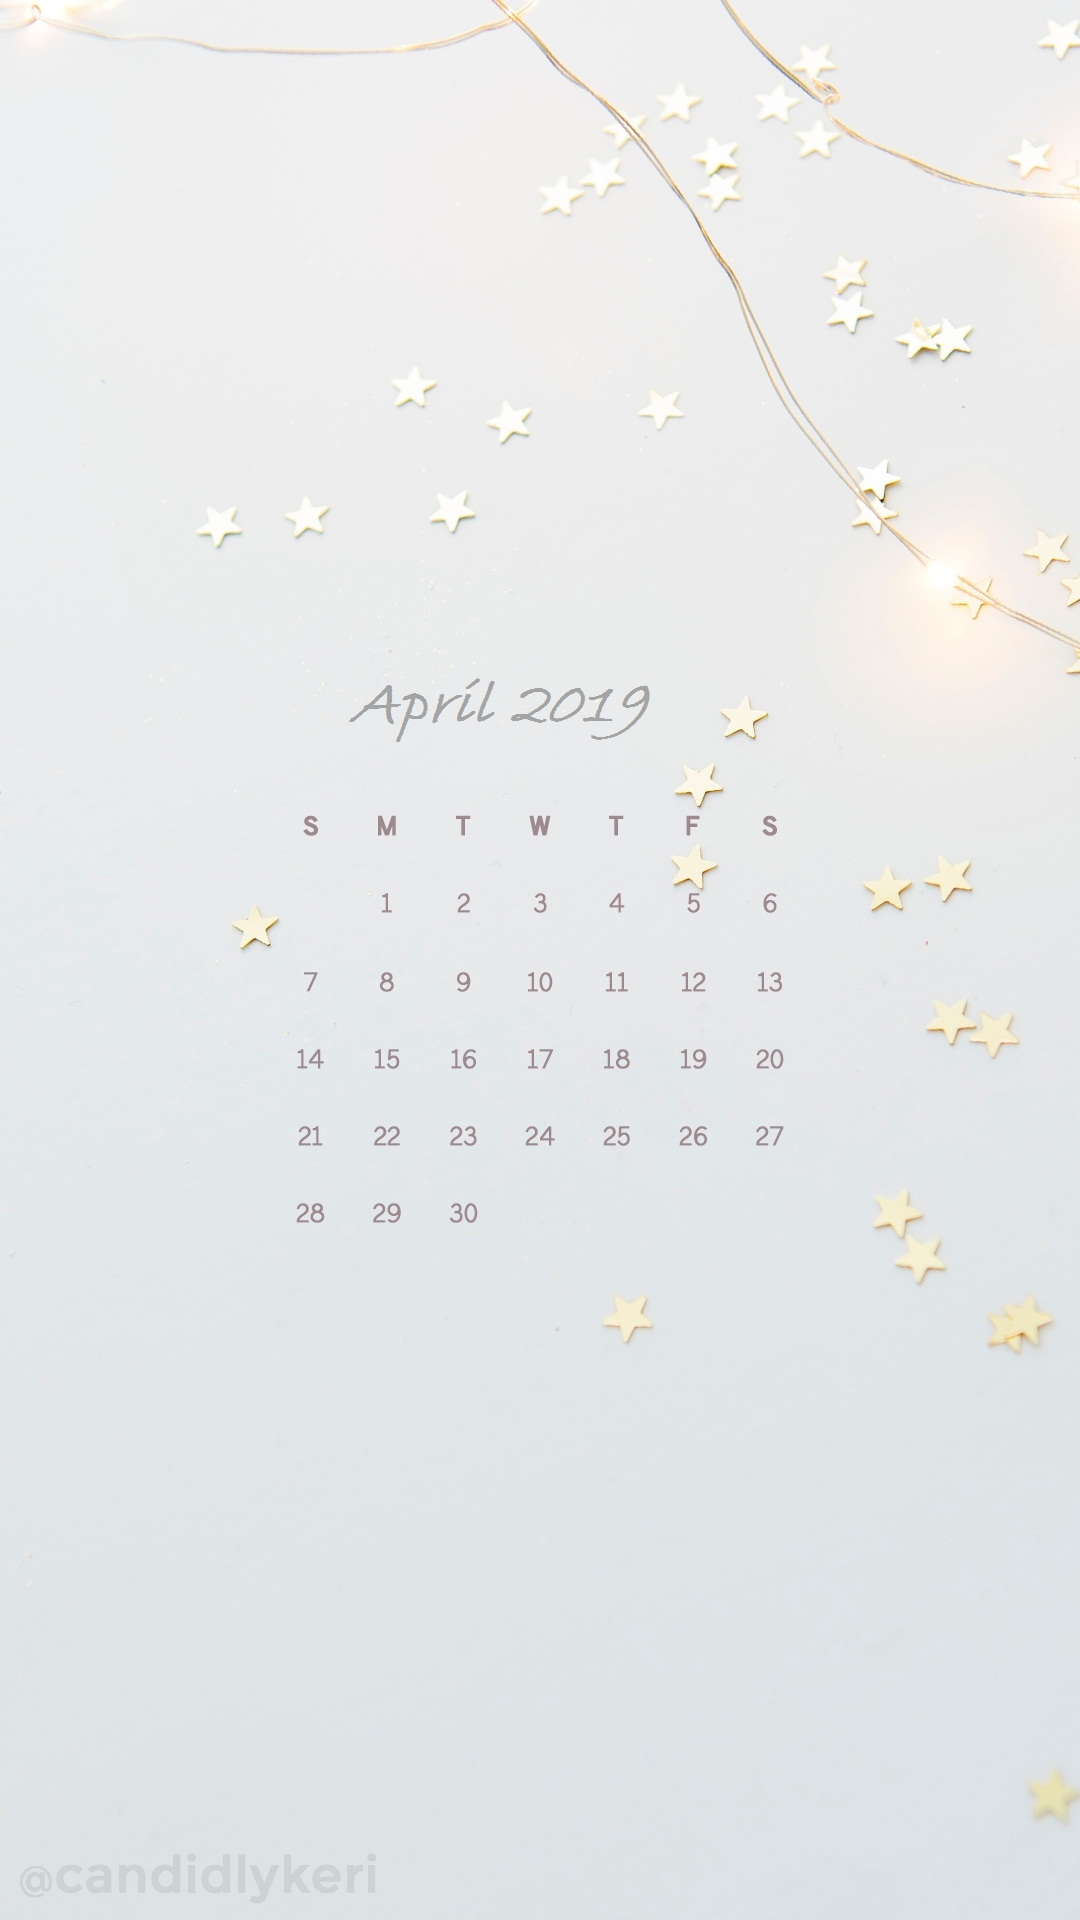 april 2019 iphone calendar wallpaper calendar 2019::April 2019 iPhone Calendar